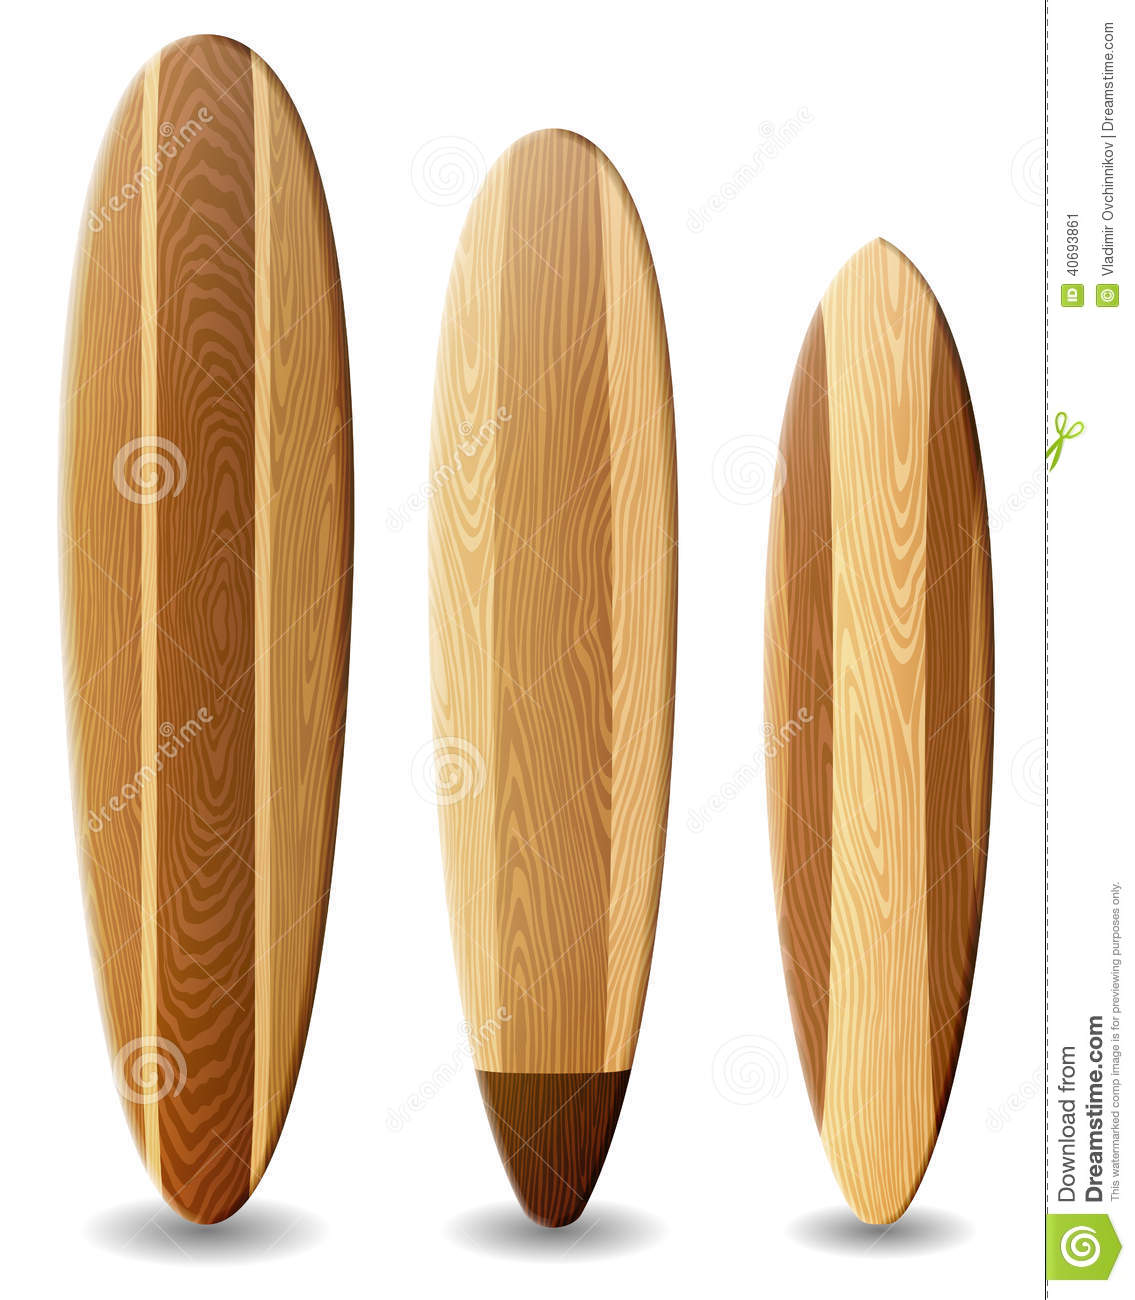 Planches De Surf En Bois Illustration Stock Image 40693861